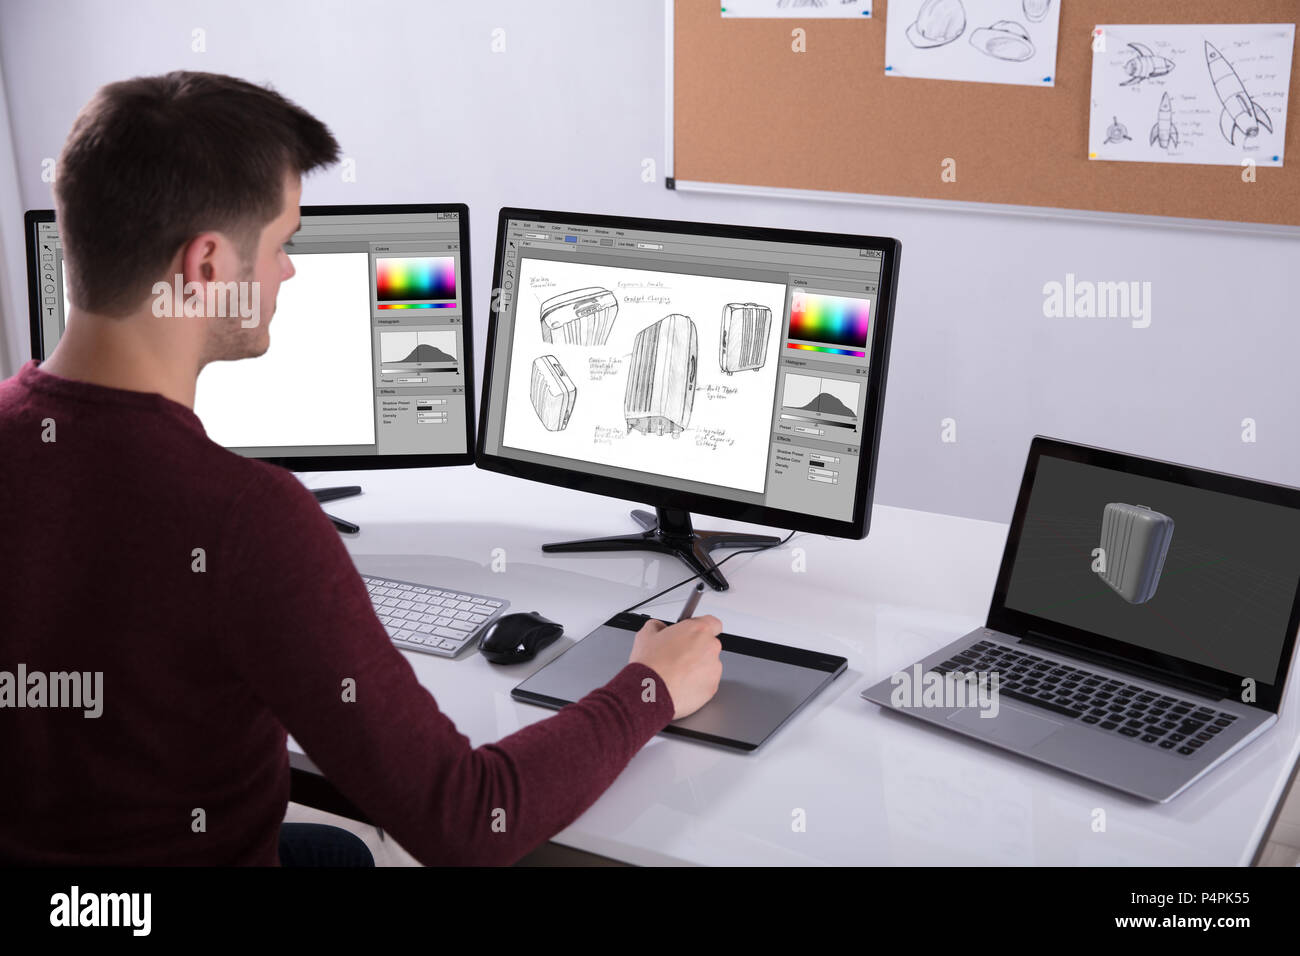 Side View Of Designer Drawing Suitcase On Computer Using Graphic Tablet In Office - Stock Image